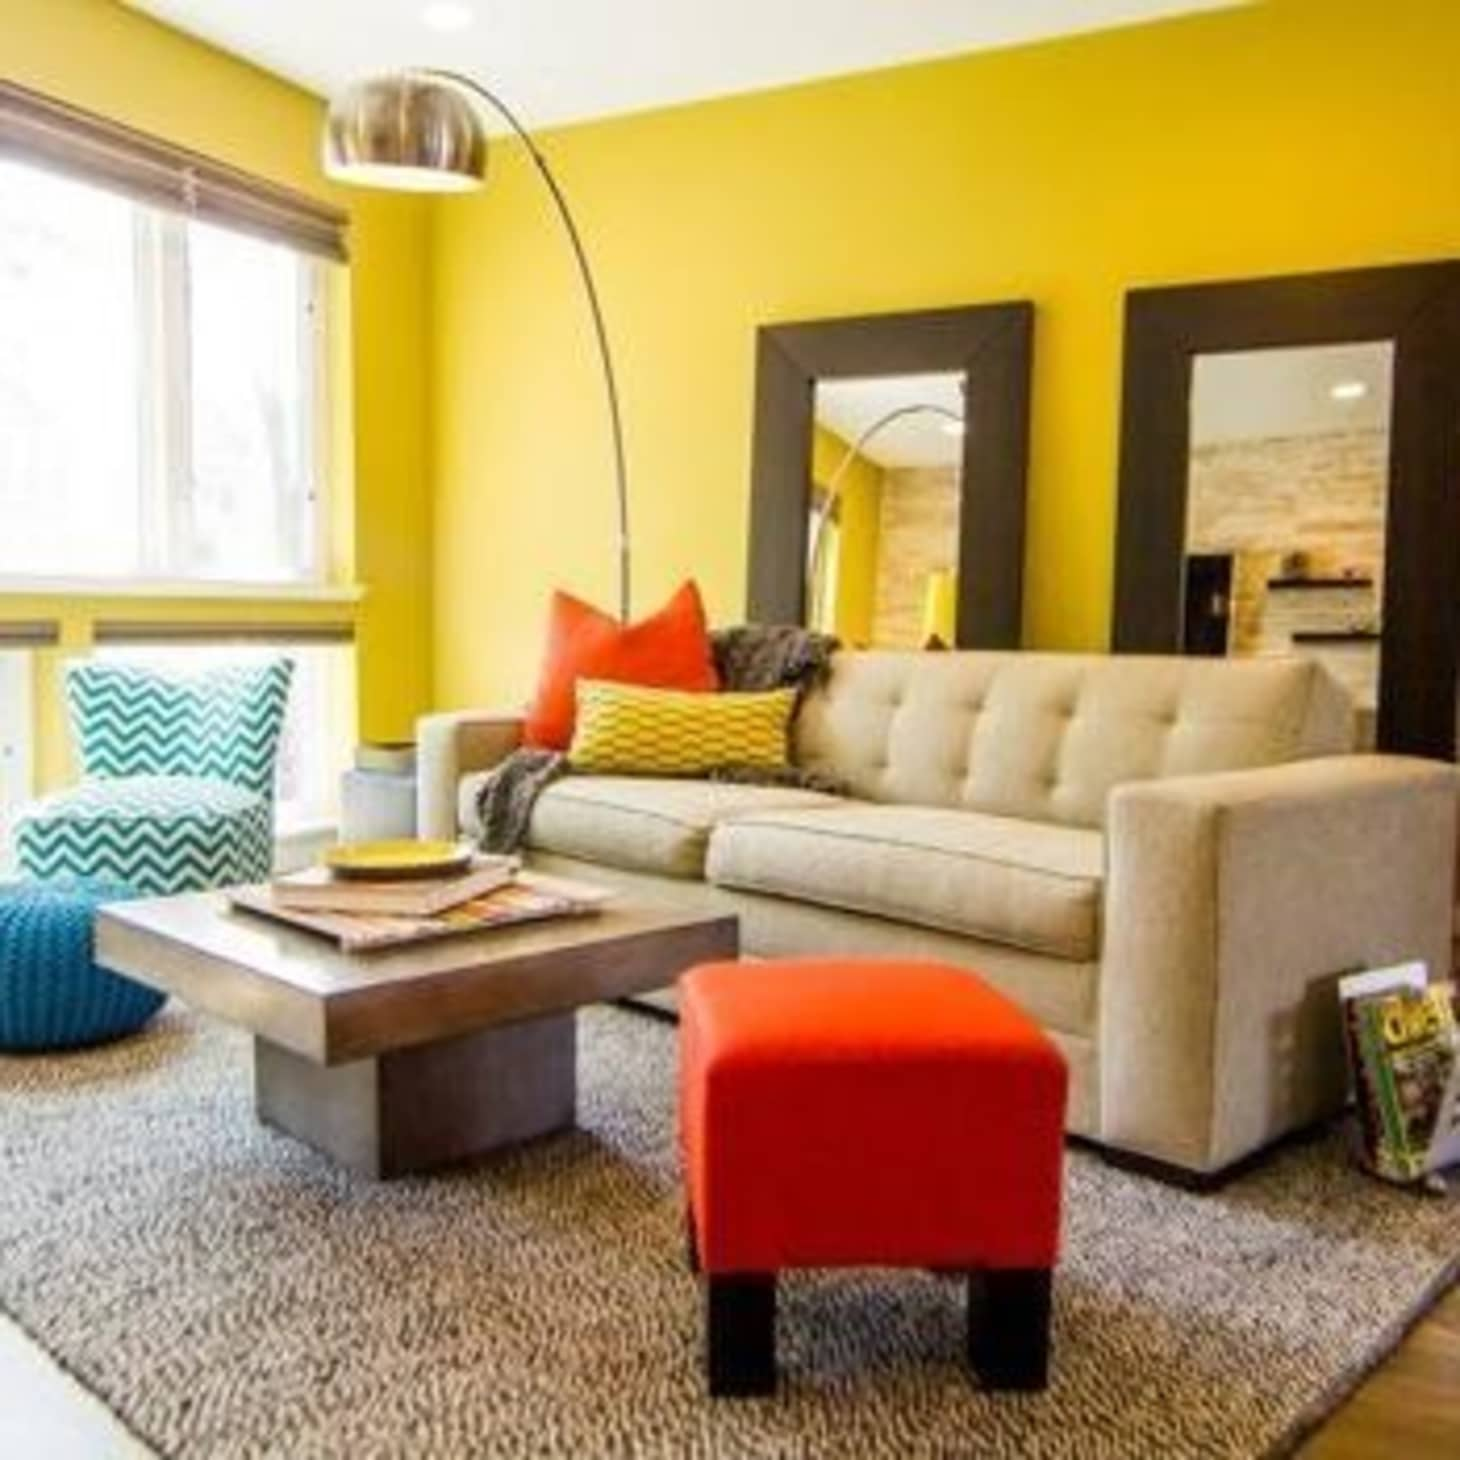 Cool Living Room Colors: How To Work With Warm & Cool Colors